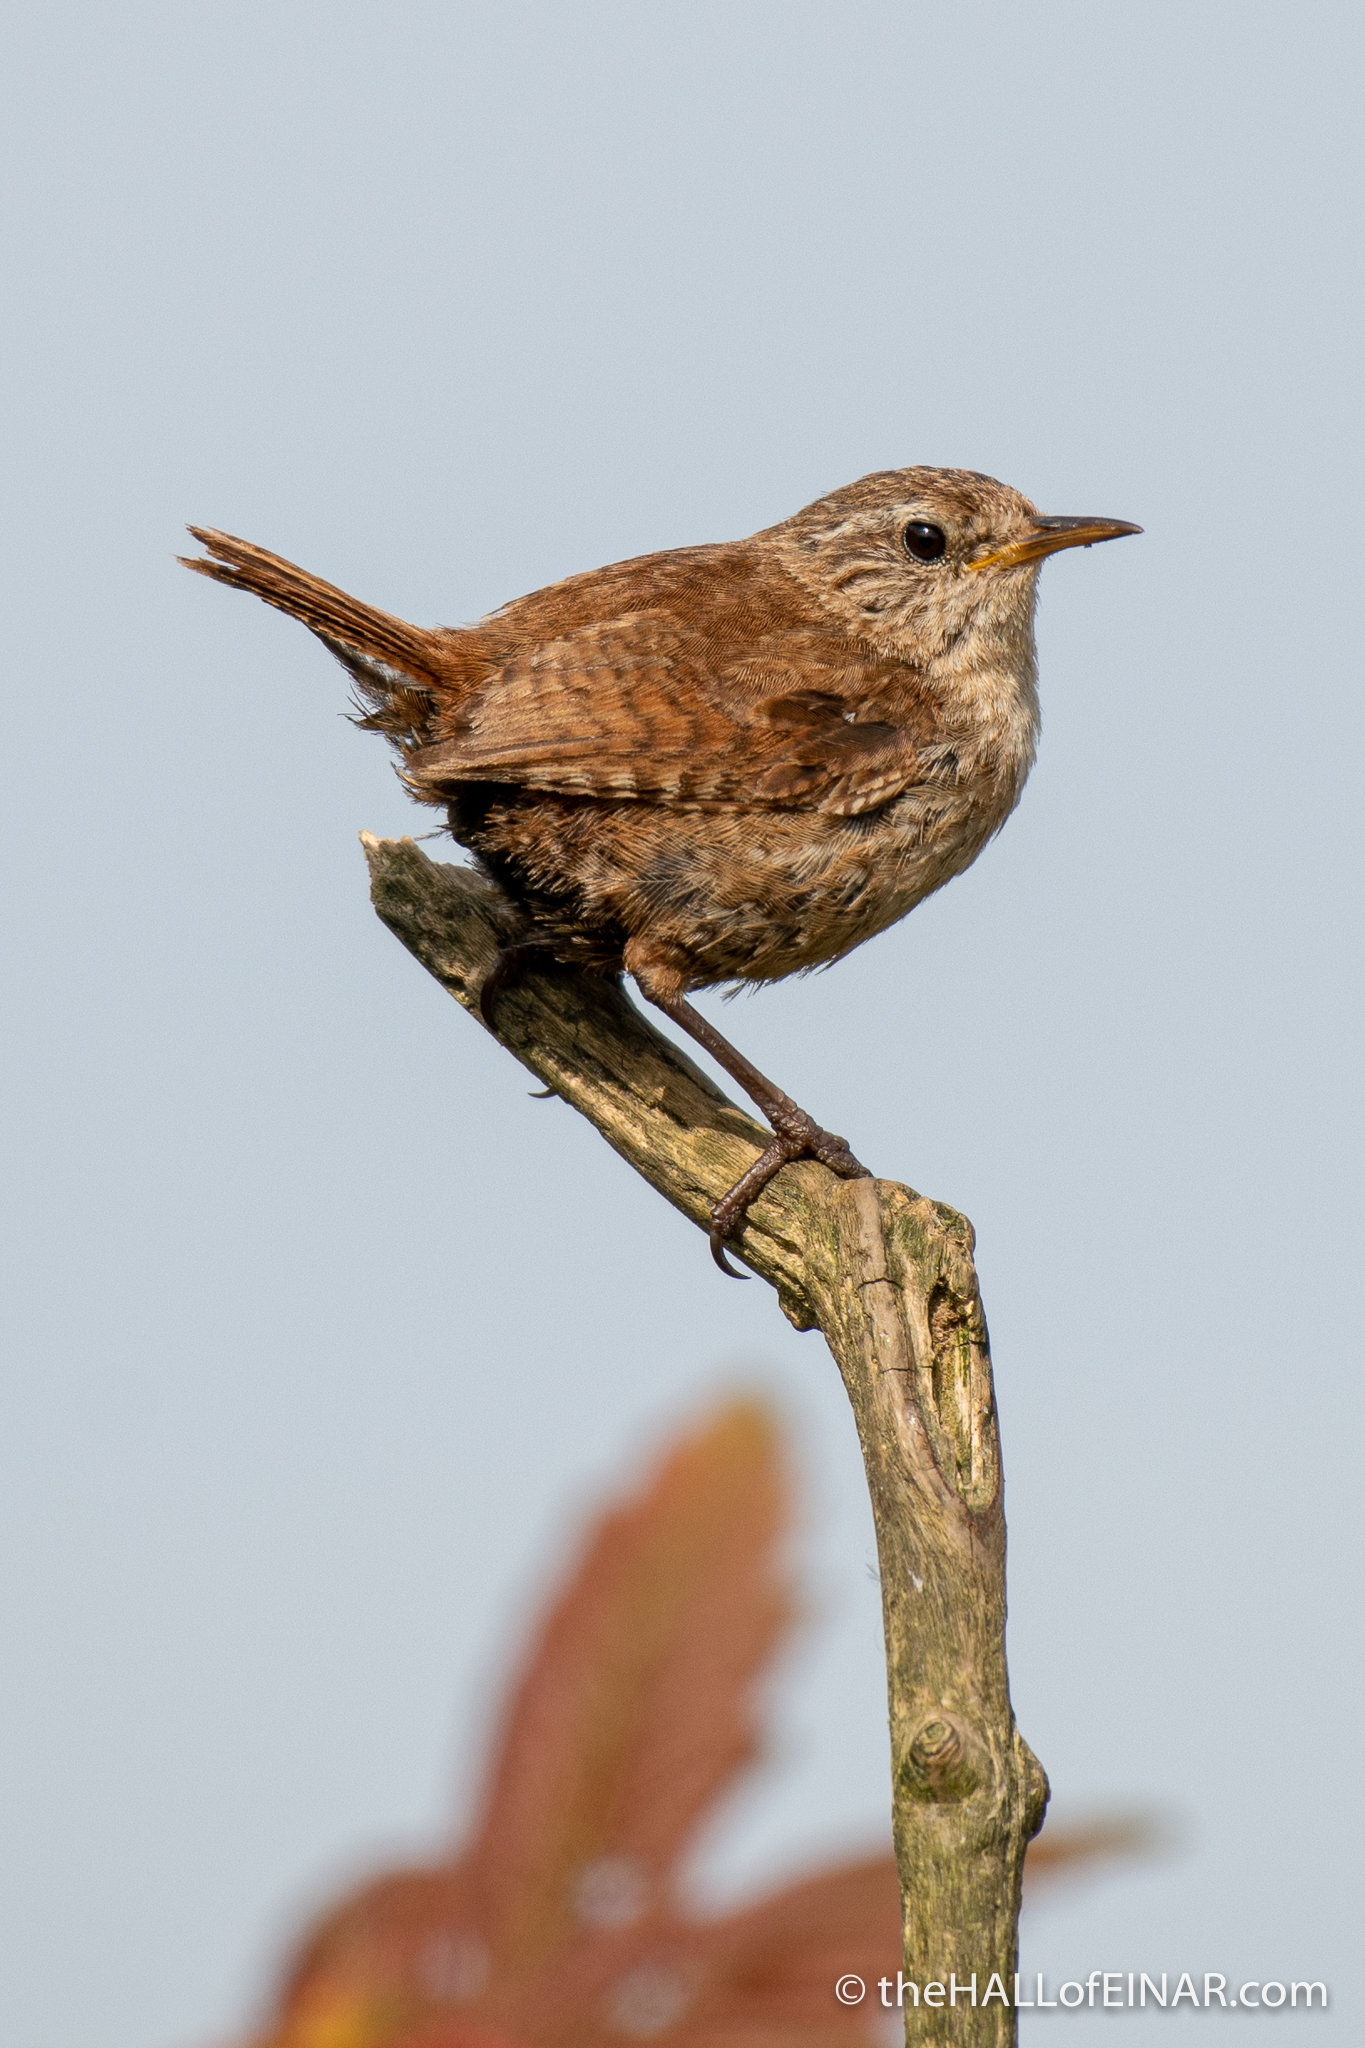 Wren - The Hall of Einar - photograph (c) David Bailey (not the)